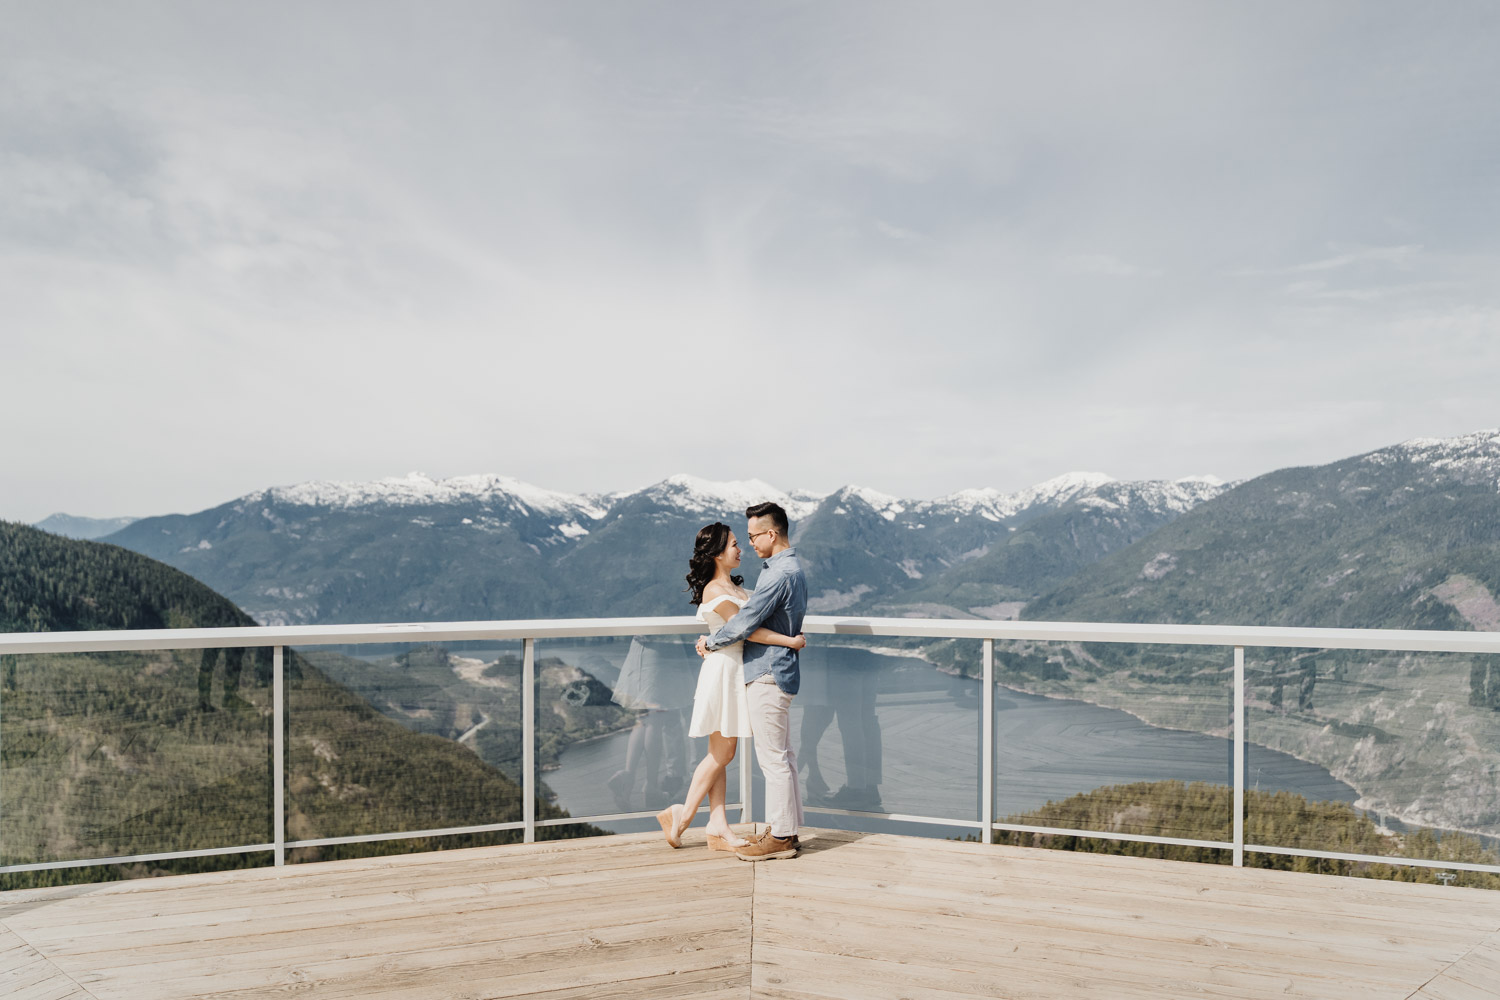 sea to sky engagement photography in squamish, BC peak views